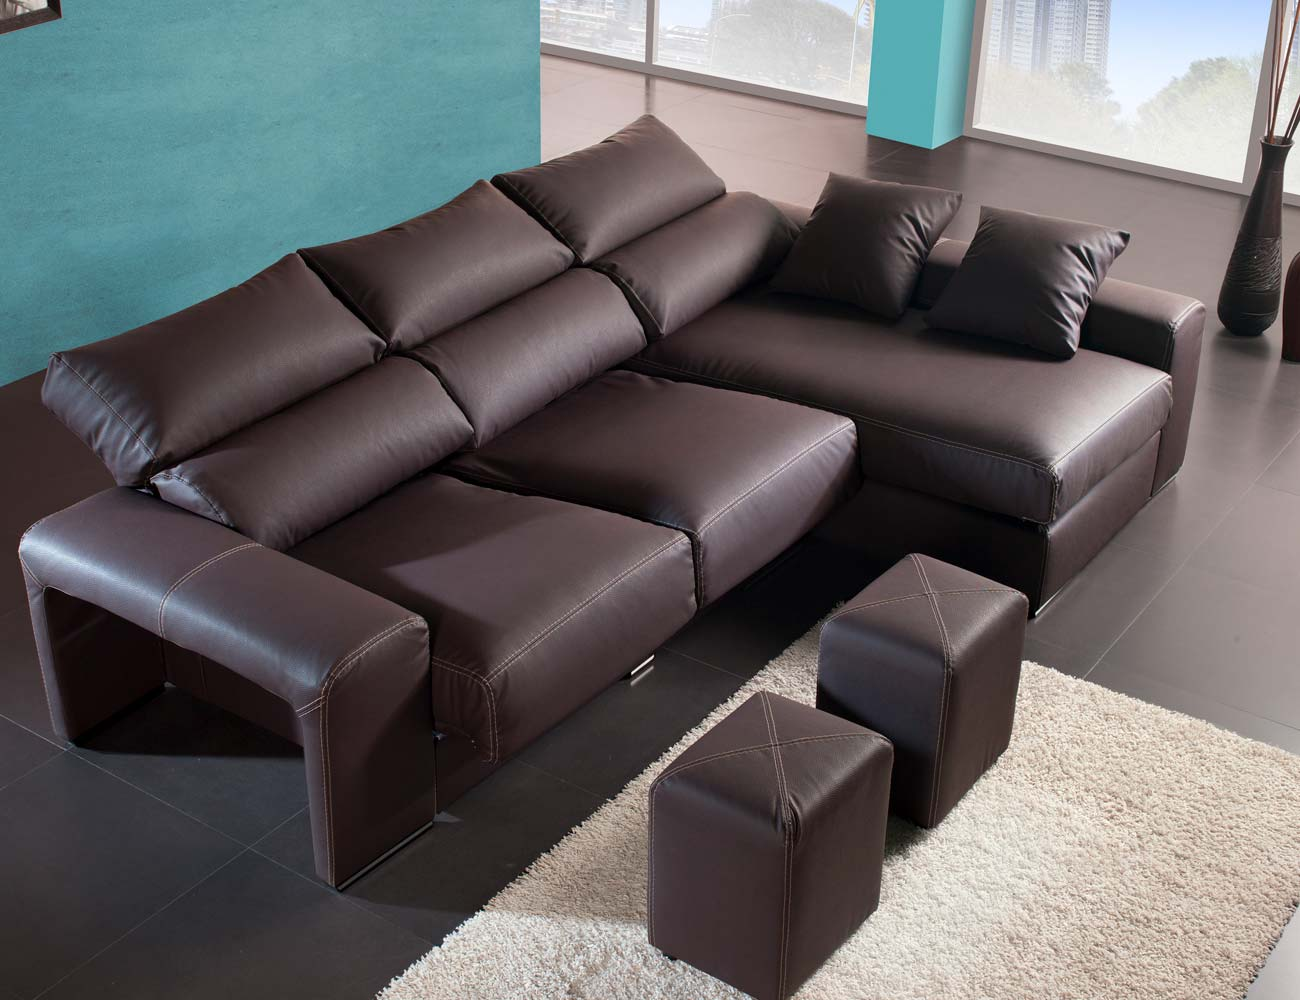 Sofa chaiselongue moderno polipiel chocolate poufs taburetes61